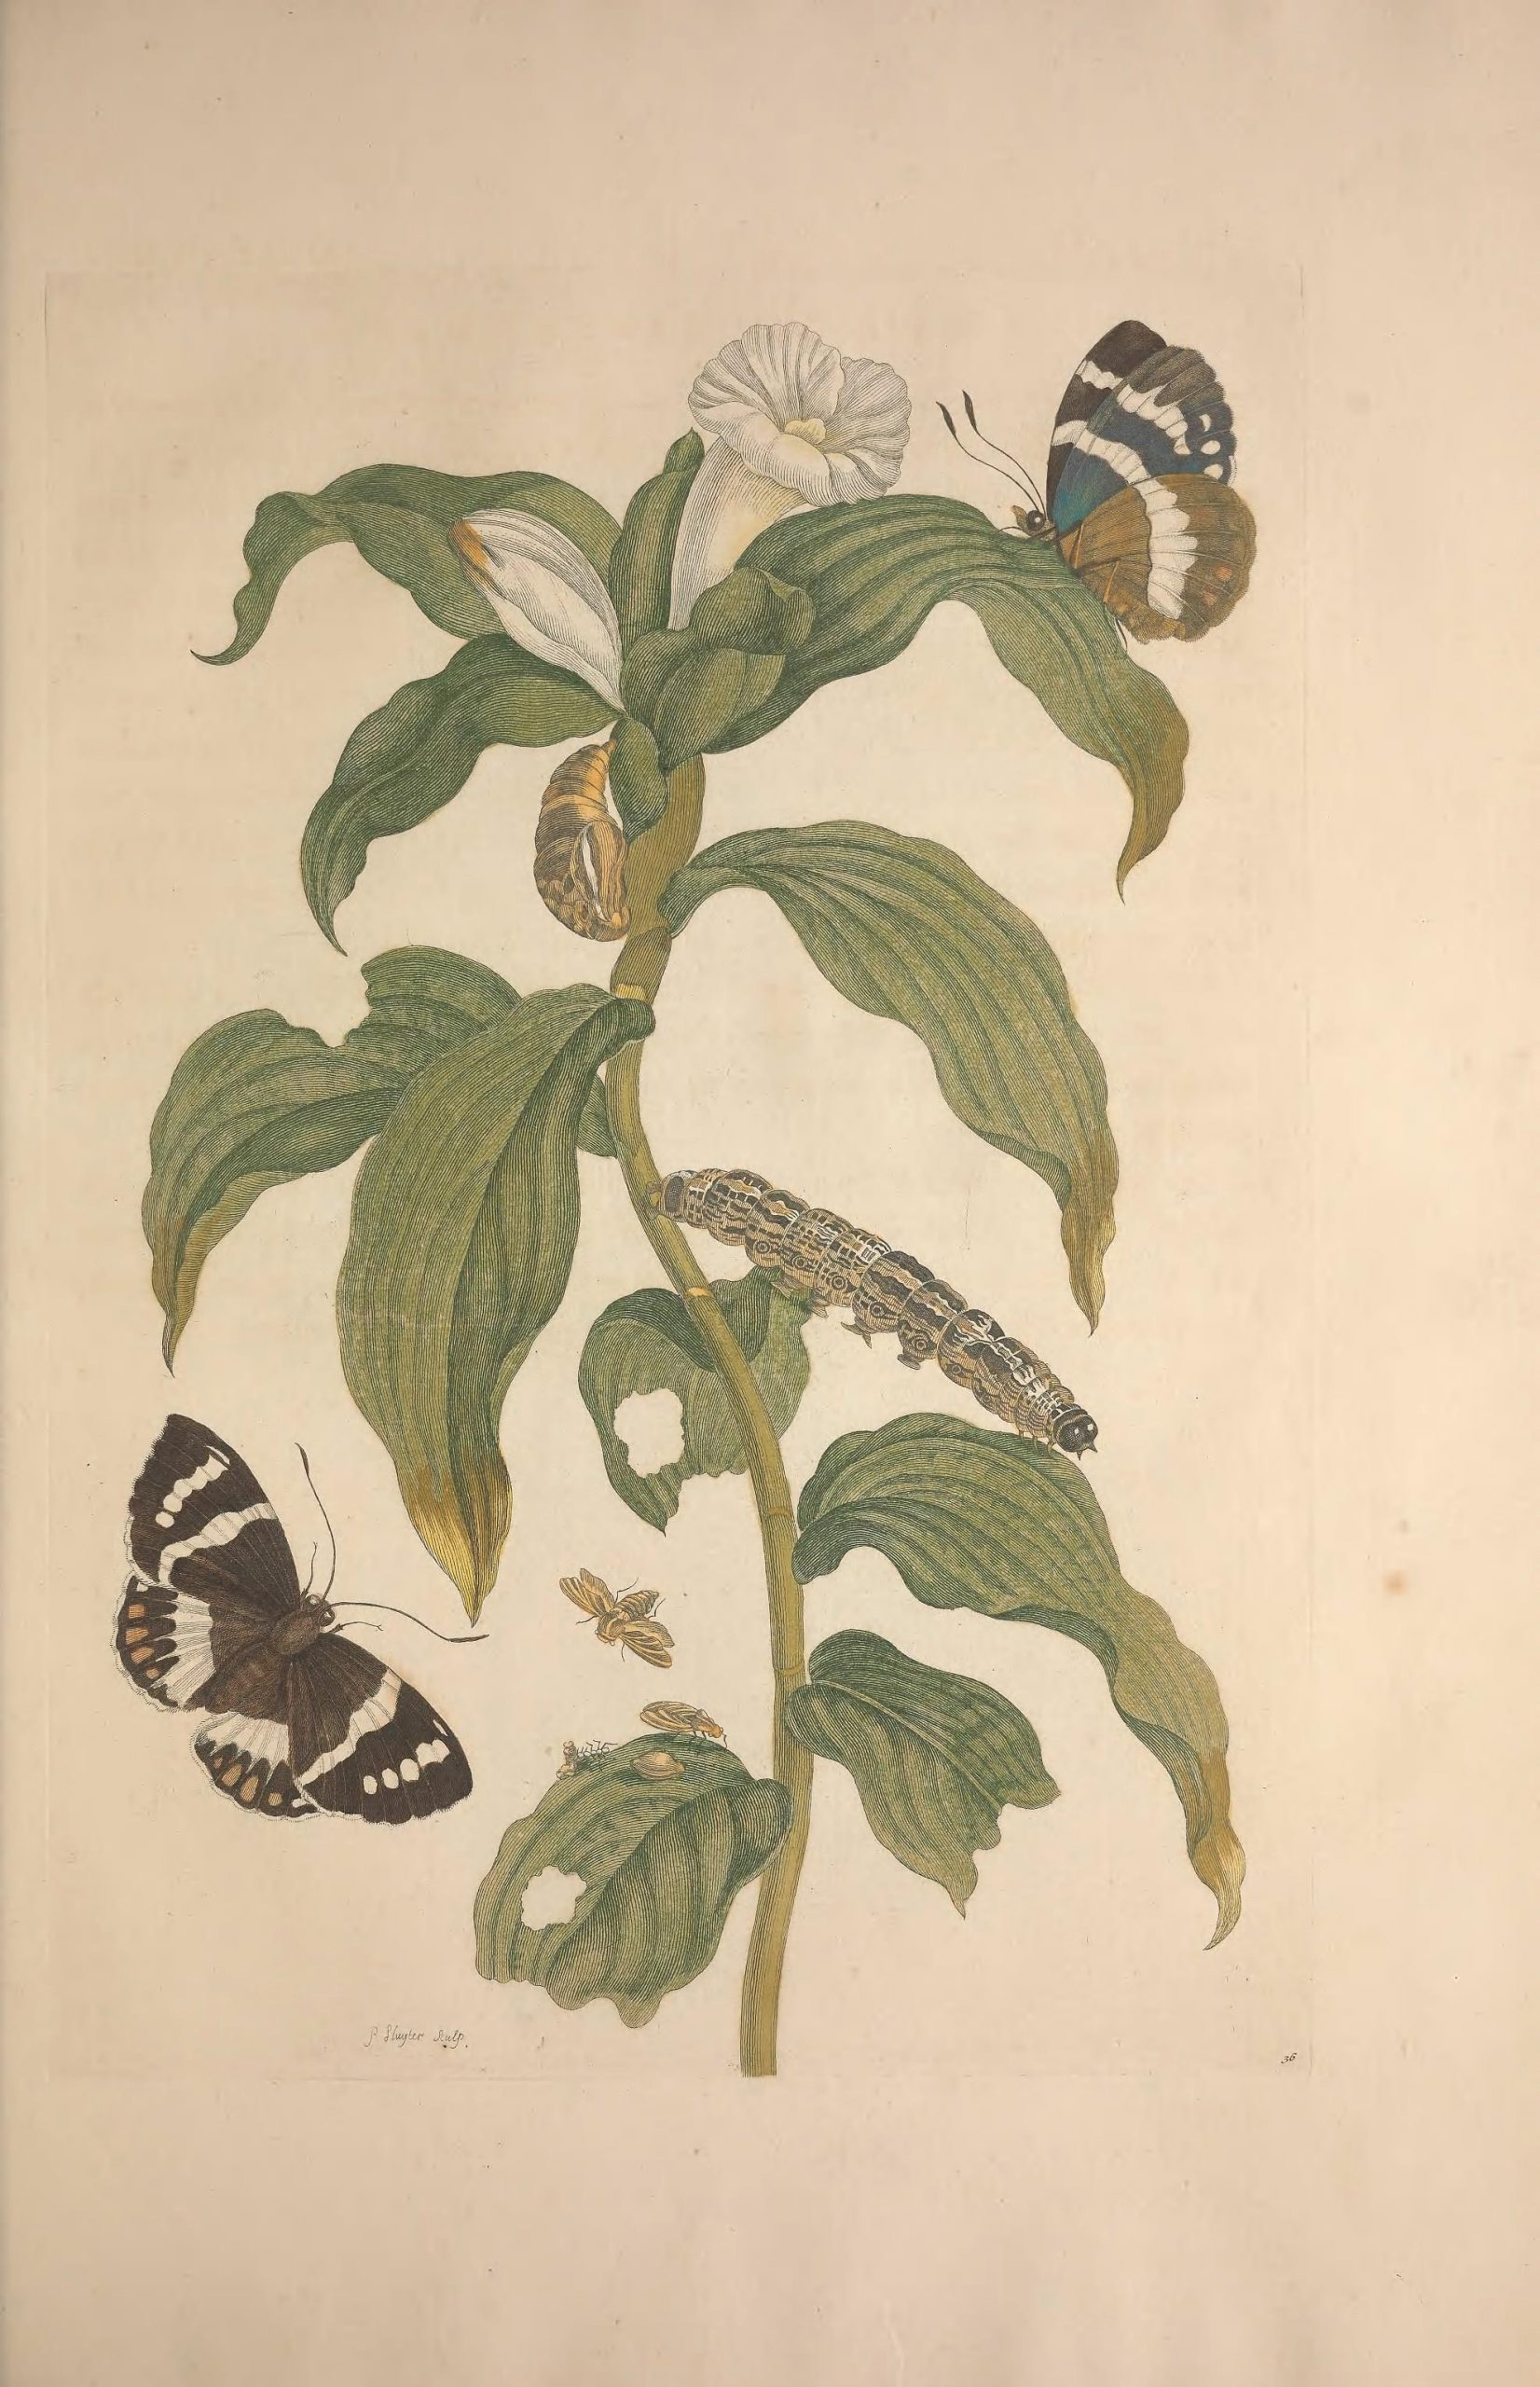 Costus Arabicus, a Banana Stem Borer Moth and an unidentified butterfly. Found in Metamorphosis insectorum surinamensium 1705, plate 36.